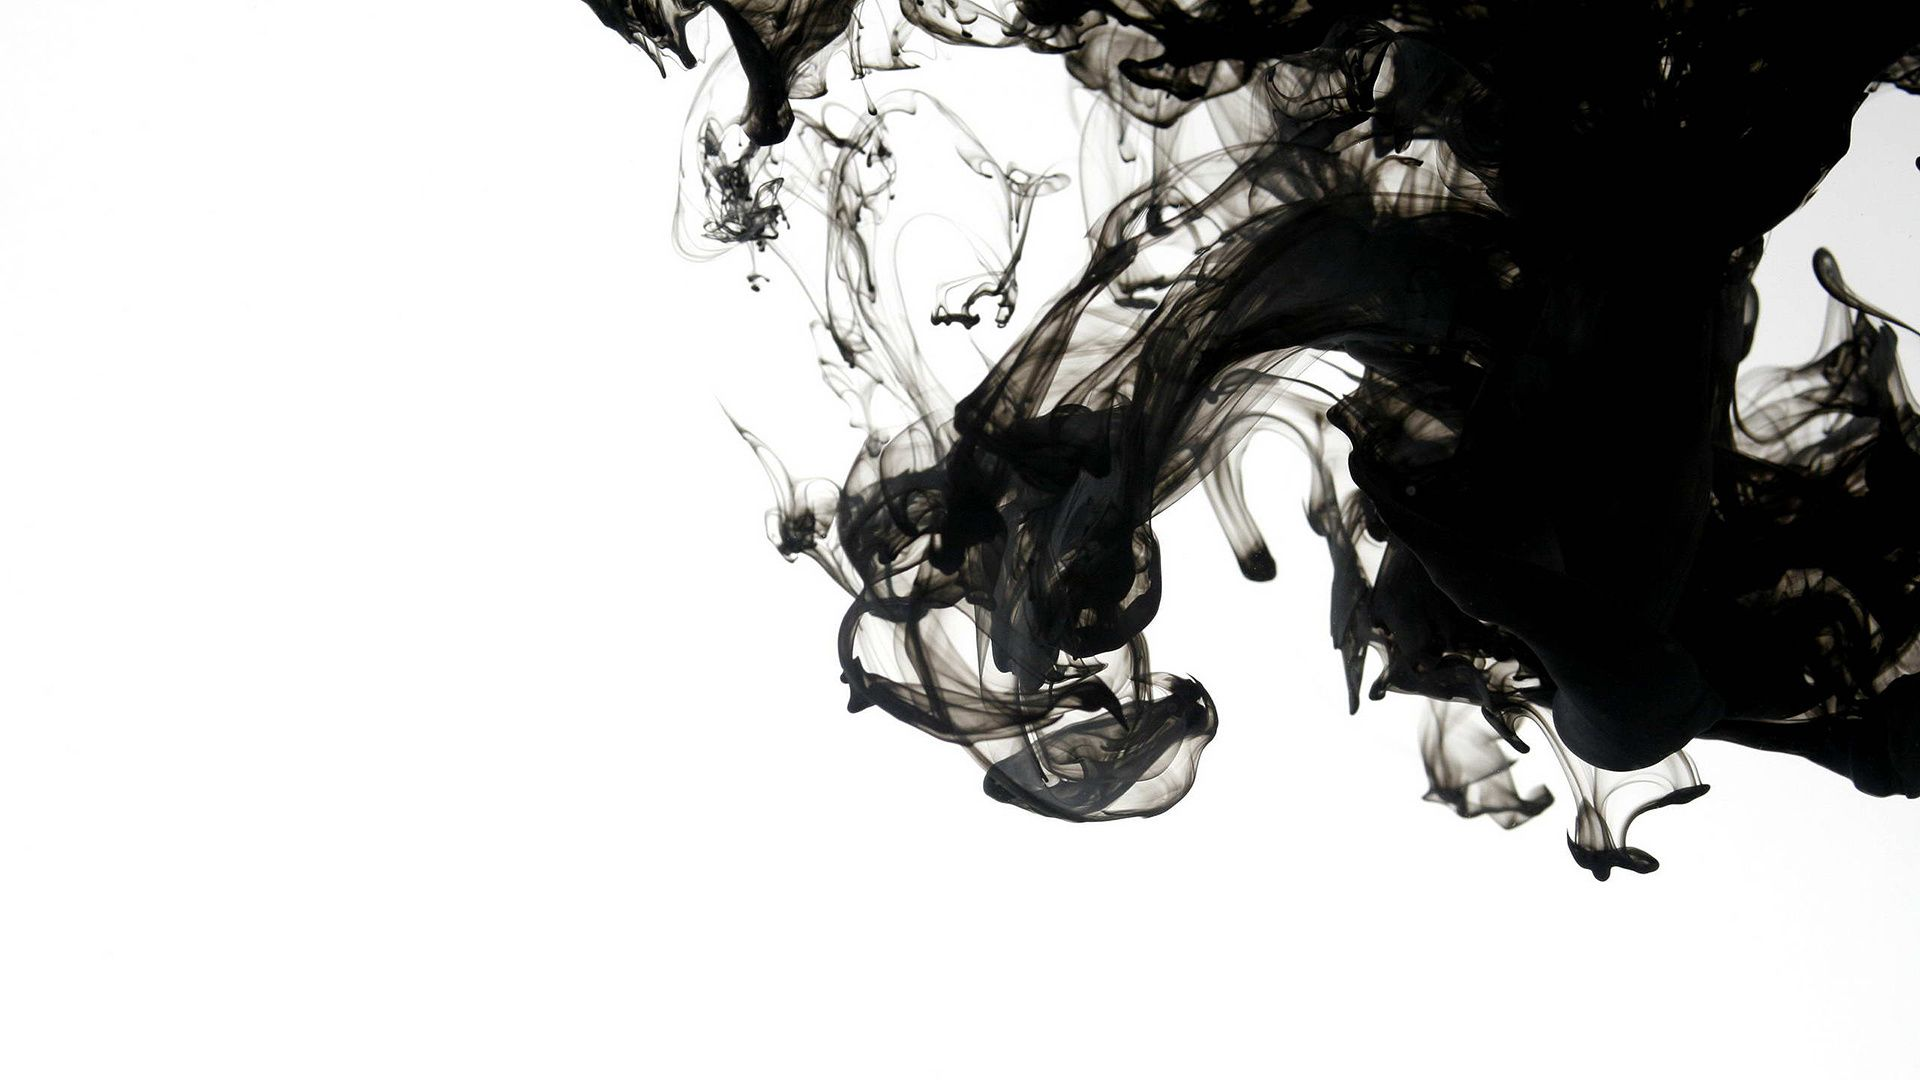 Abstract Pictures, Black And White Photography, Wallpaper Pc, Smoke Wallpaper, Black And